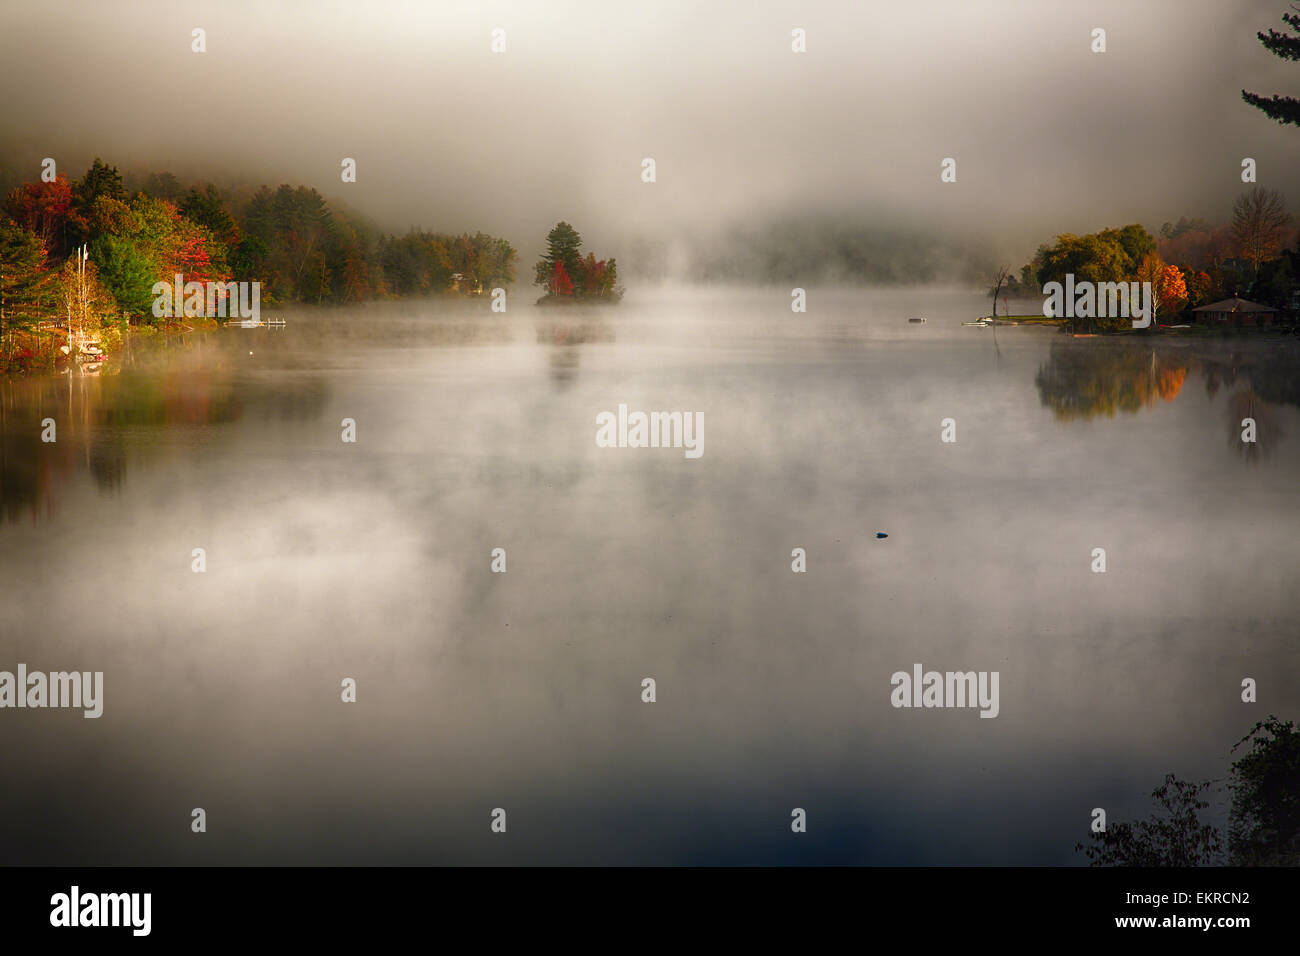 High Angle View of a Lake with Morning Fog During Fall, Knapp Brook Pond, Vermont - Stock Image